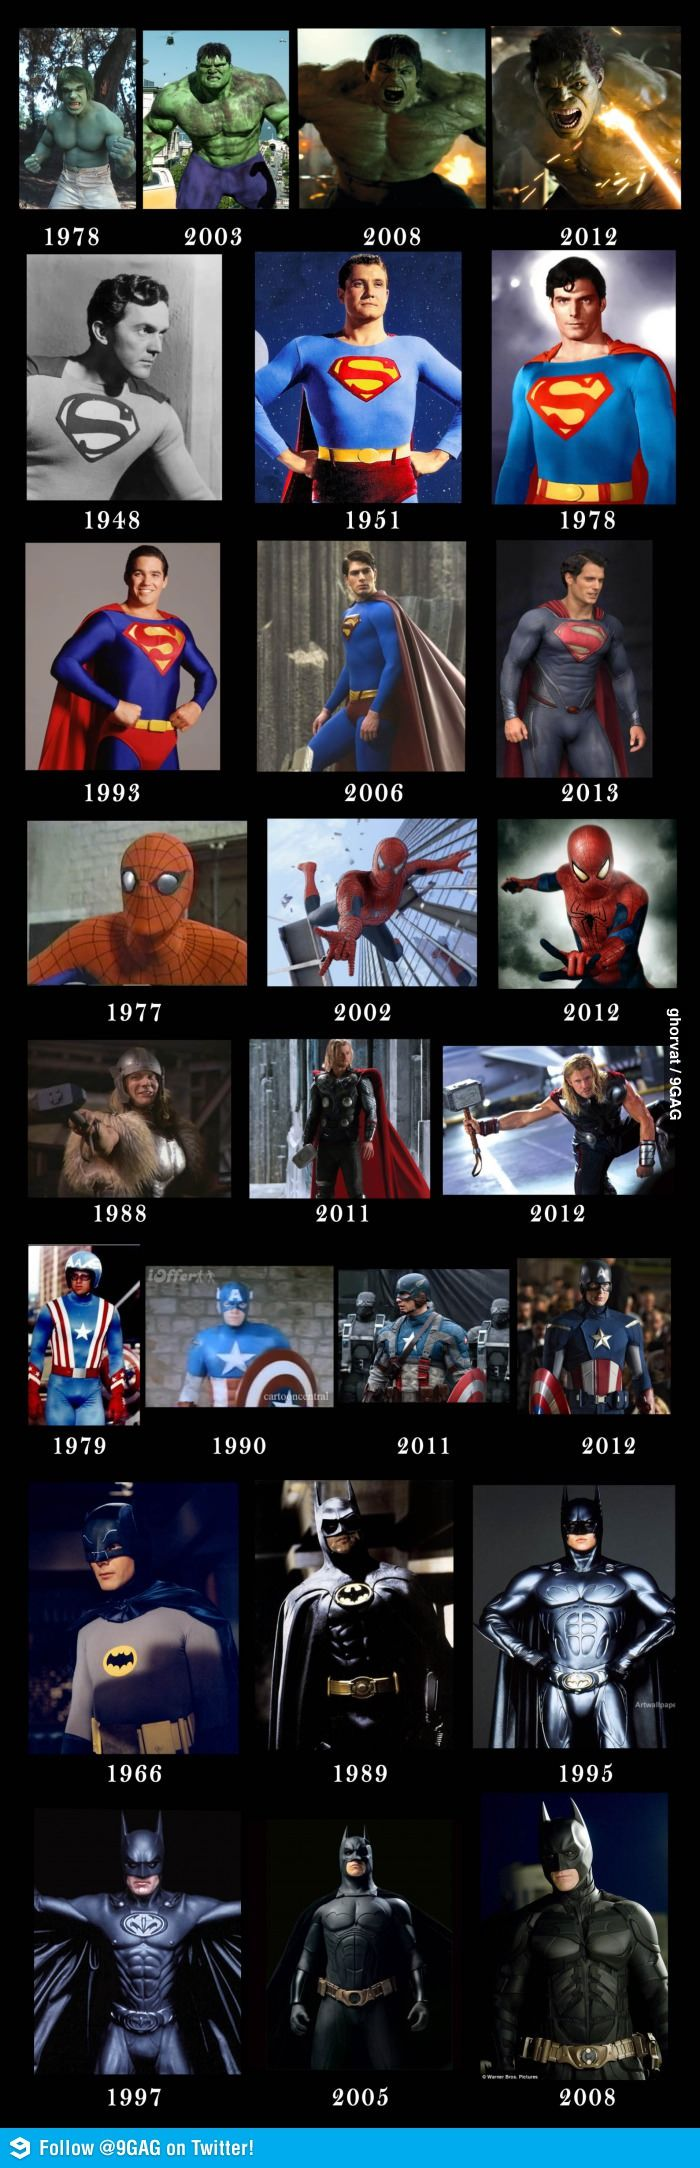 Superheroes - Then and Now.